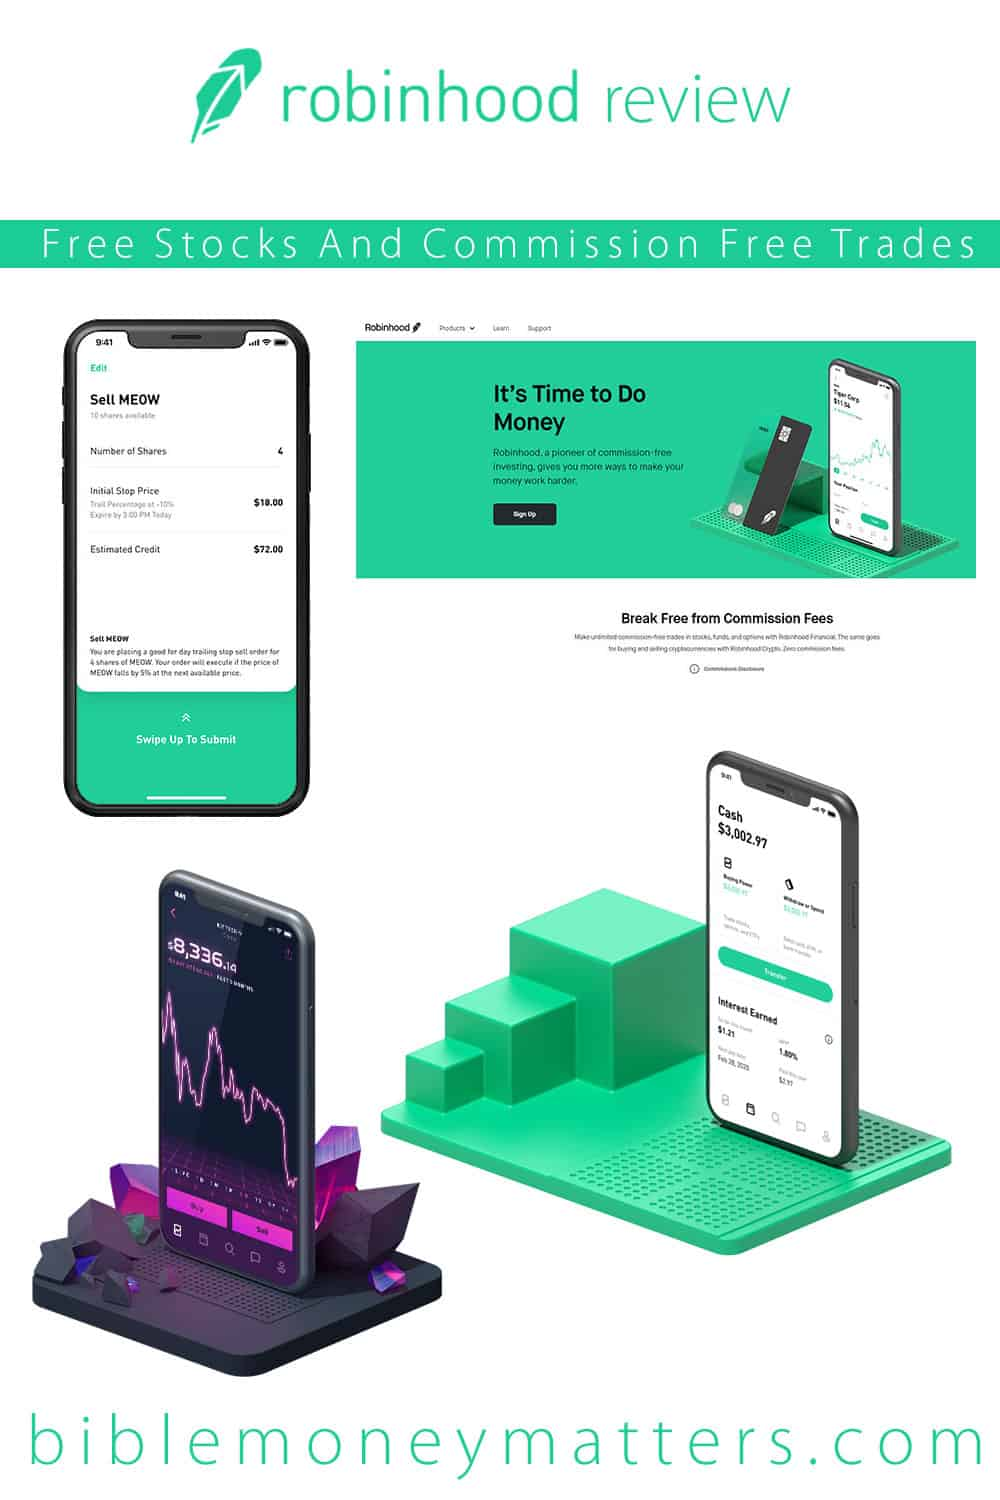 Robinhood Review: Get Free Stock And Commission Free Trades